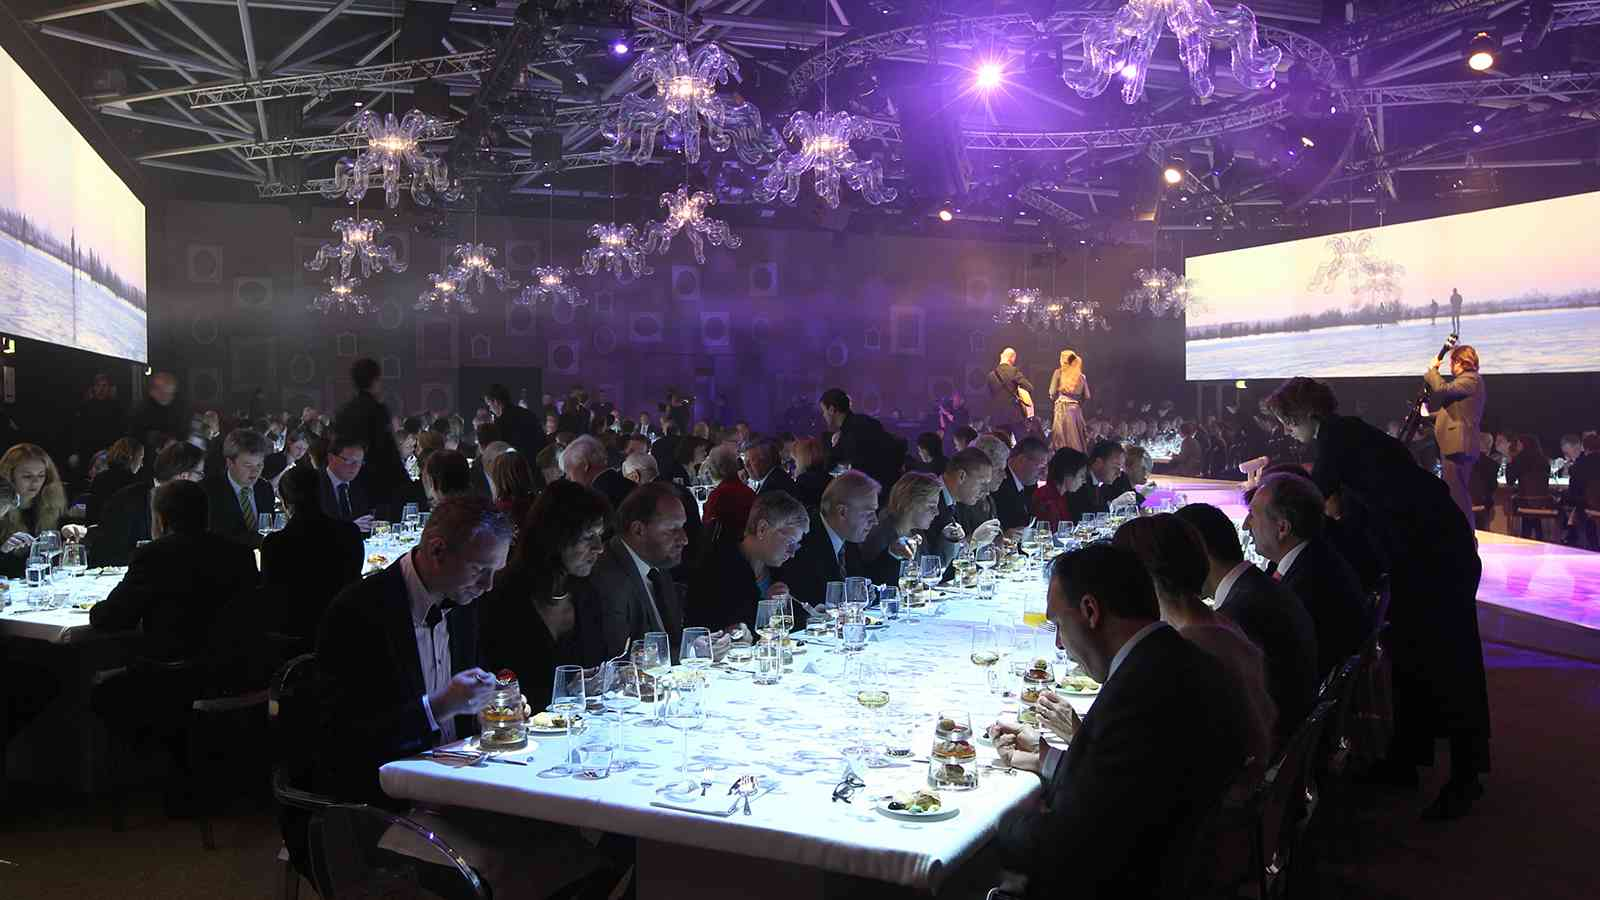 video-mapping_gala-dinner_vip-event_1600x900.jpg